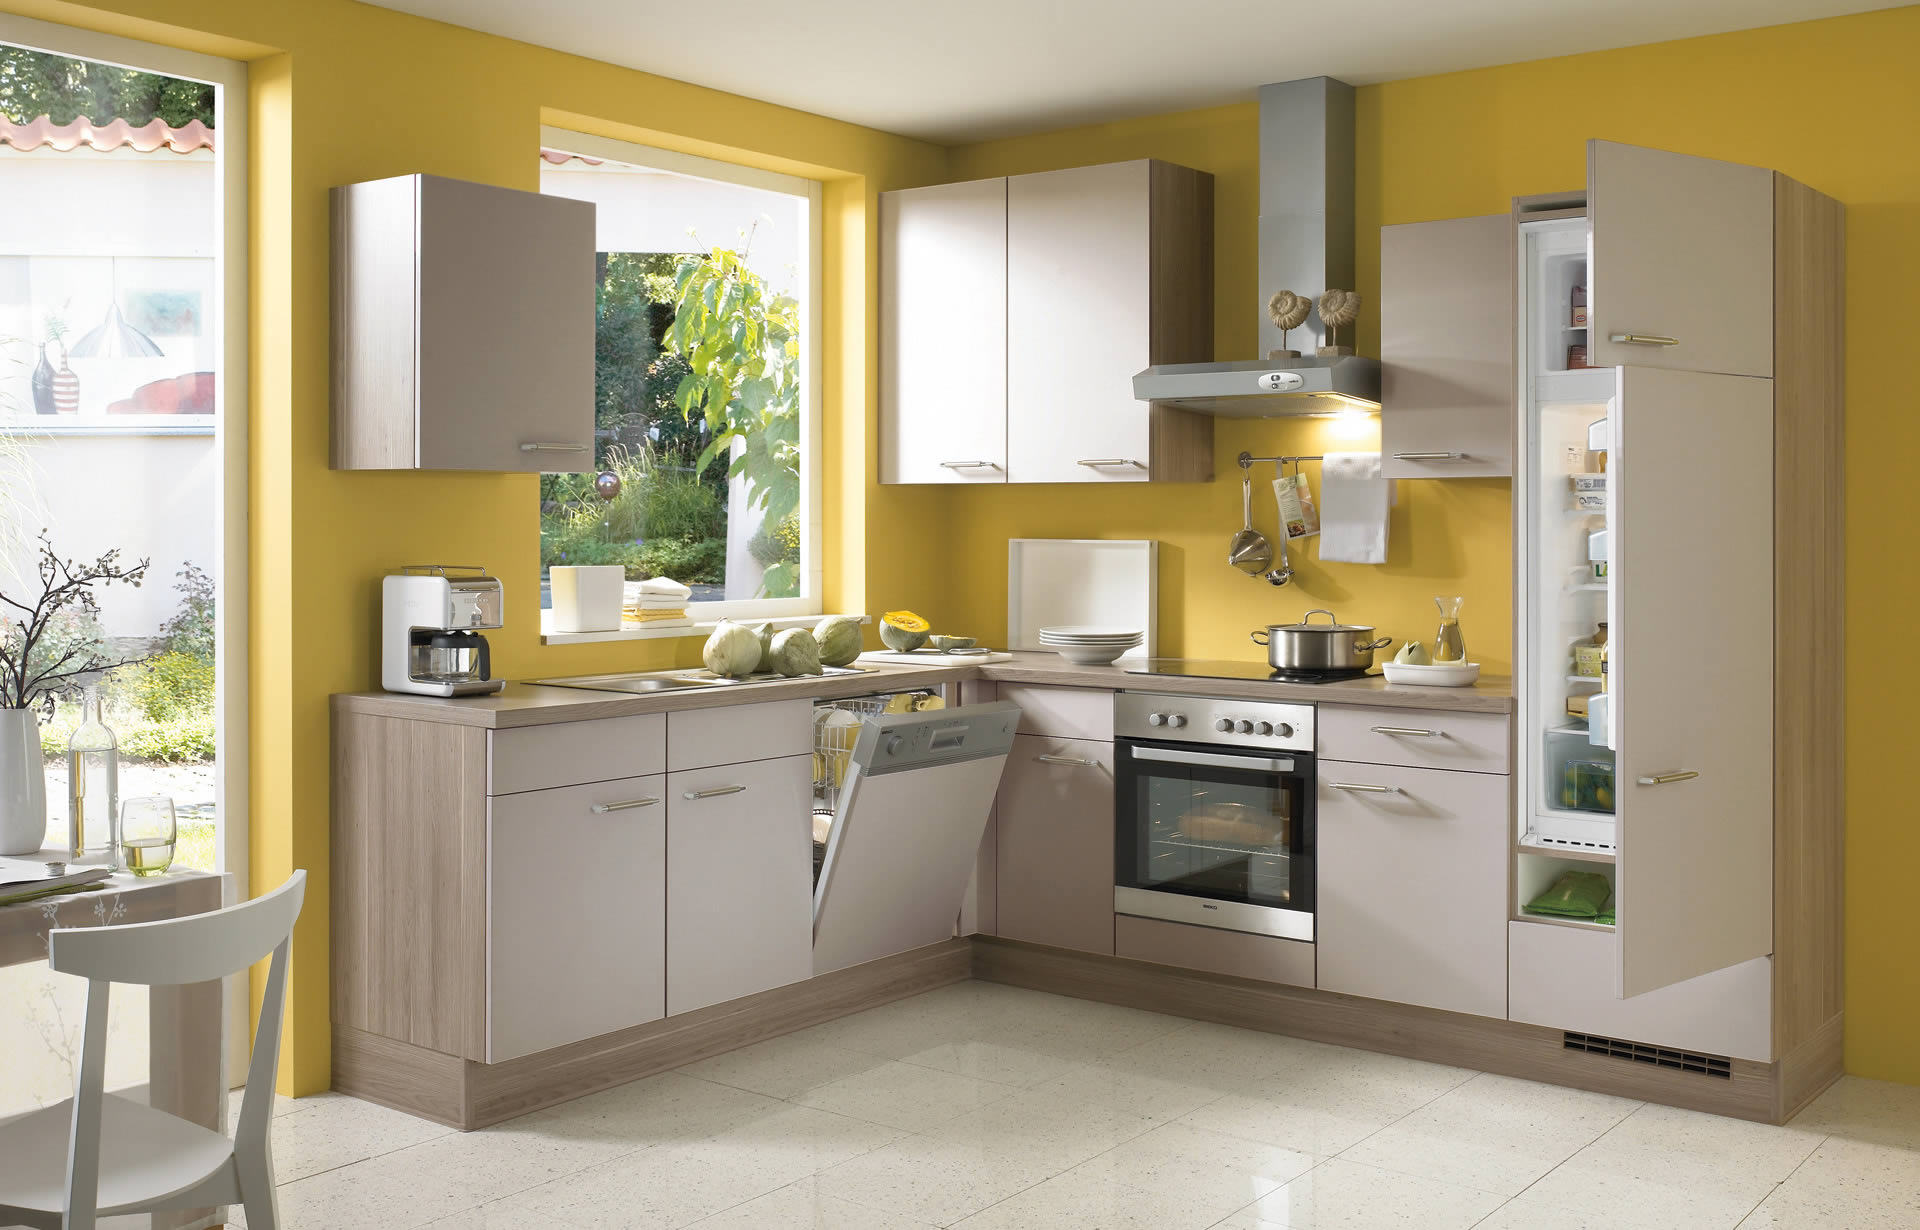 10 hometown kitchen designs ideas for Grey yellow kitchen ideas